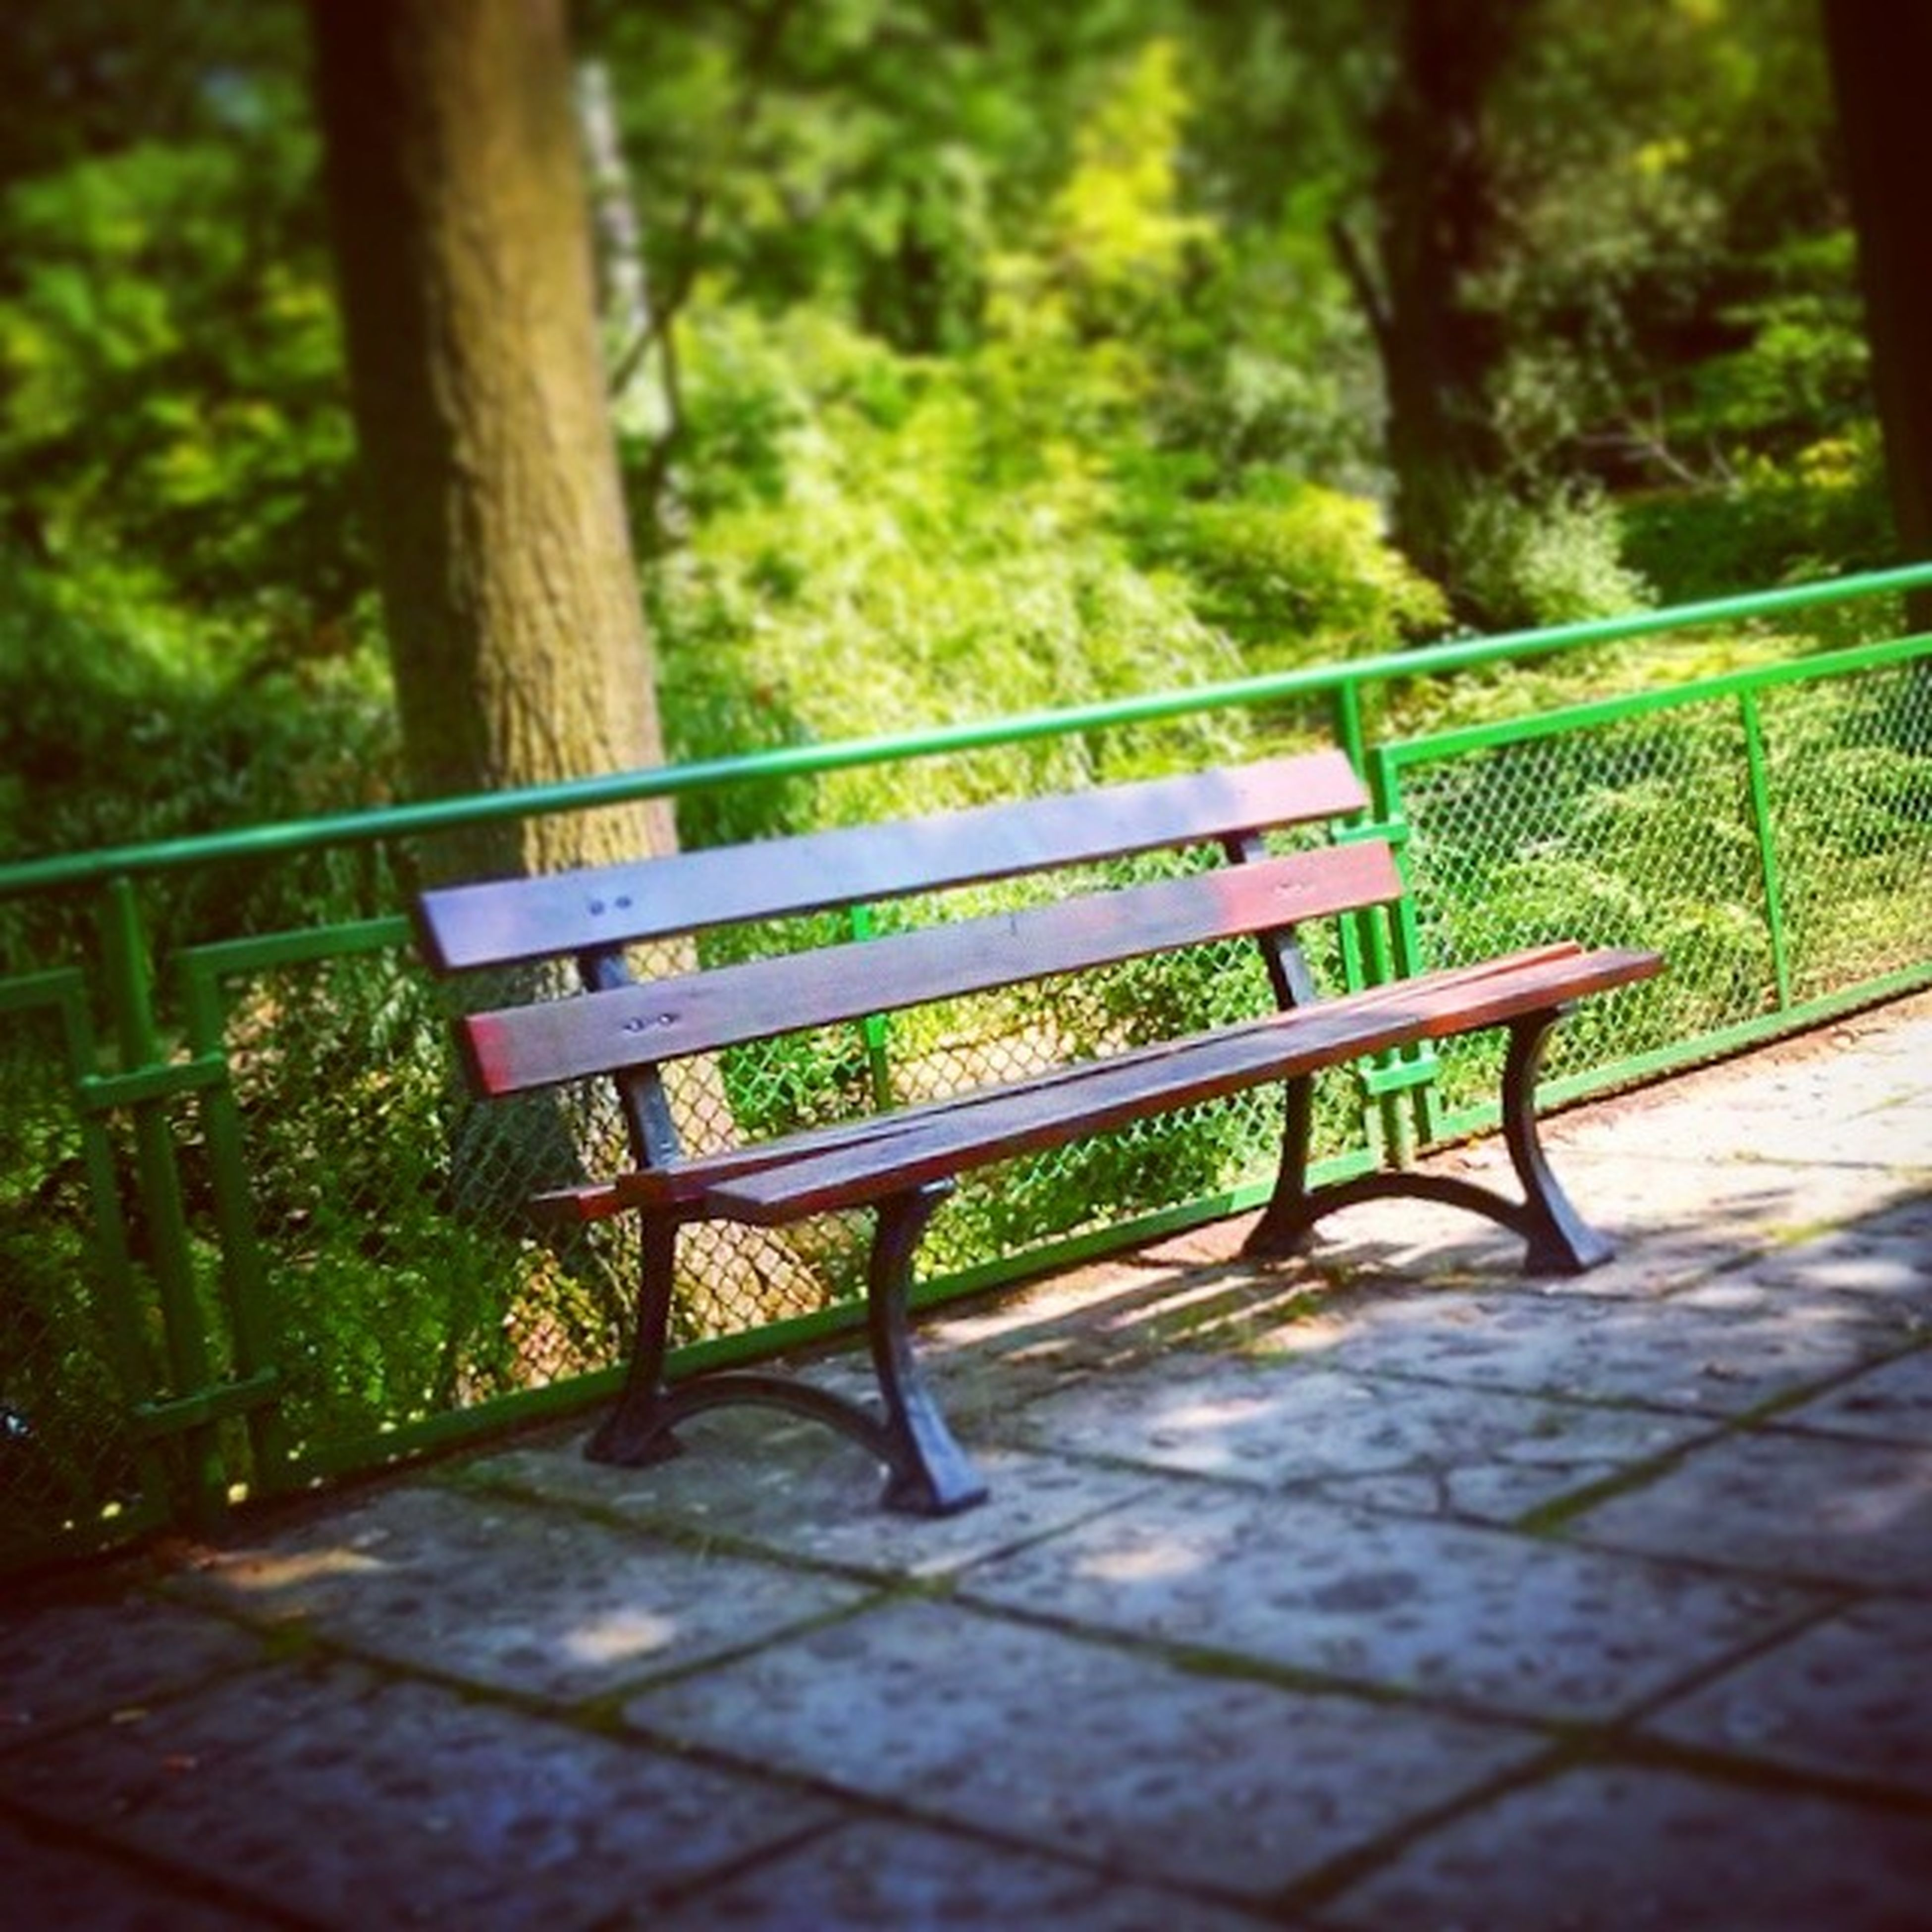 bench, tree, empty, park bench, absence, park - man made space, railing, tranquility, wood - material, shadow, seat, park, sunlight, growth, nature, footpath, chair, day, outdoors, green color